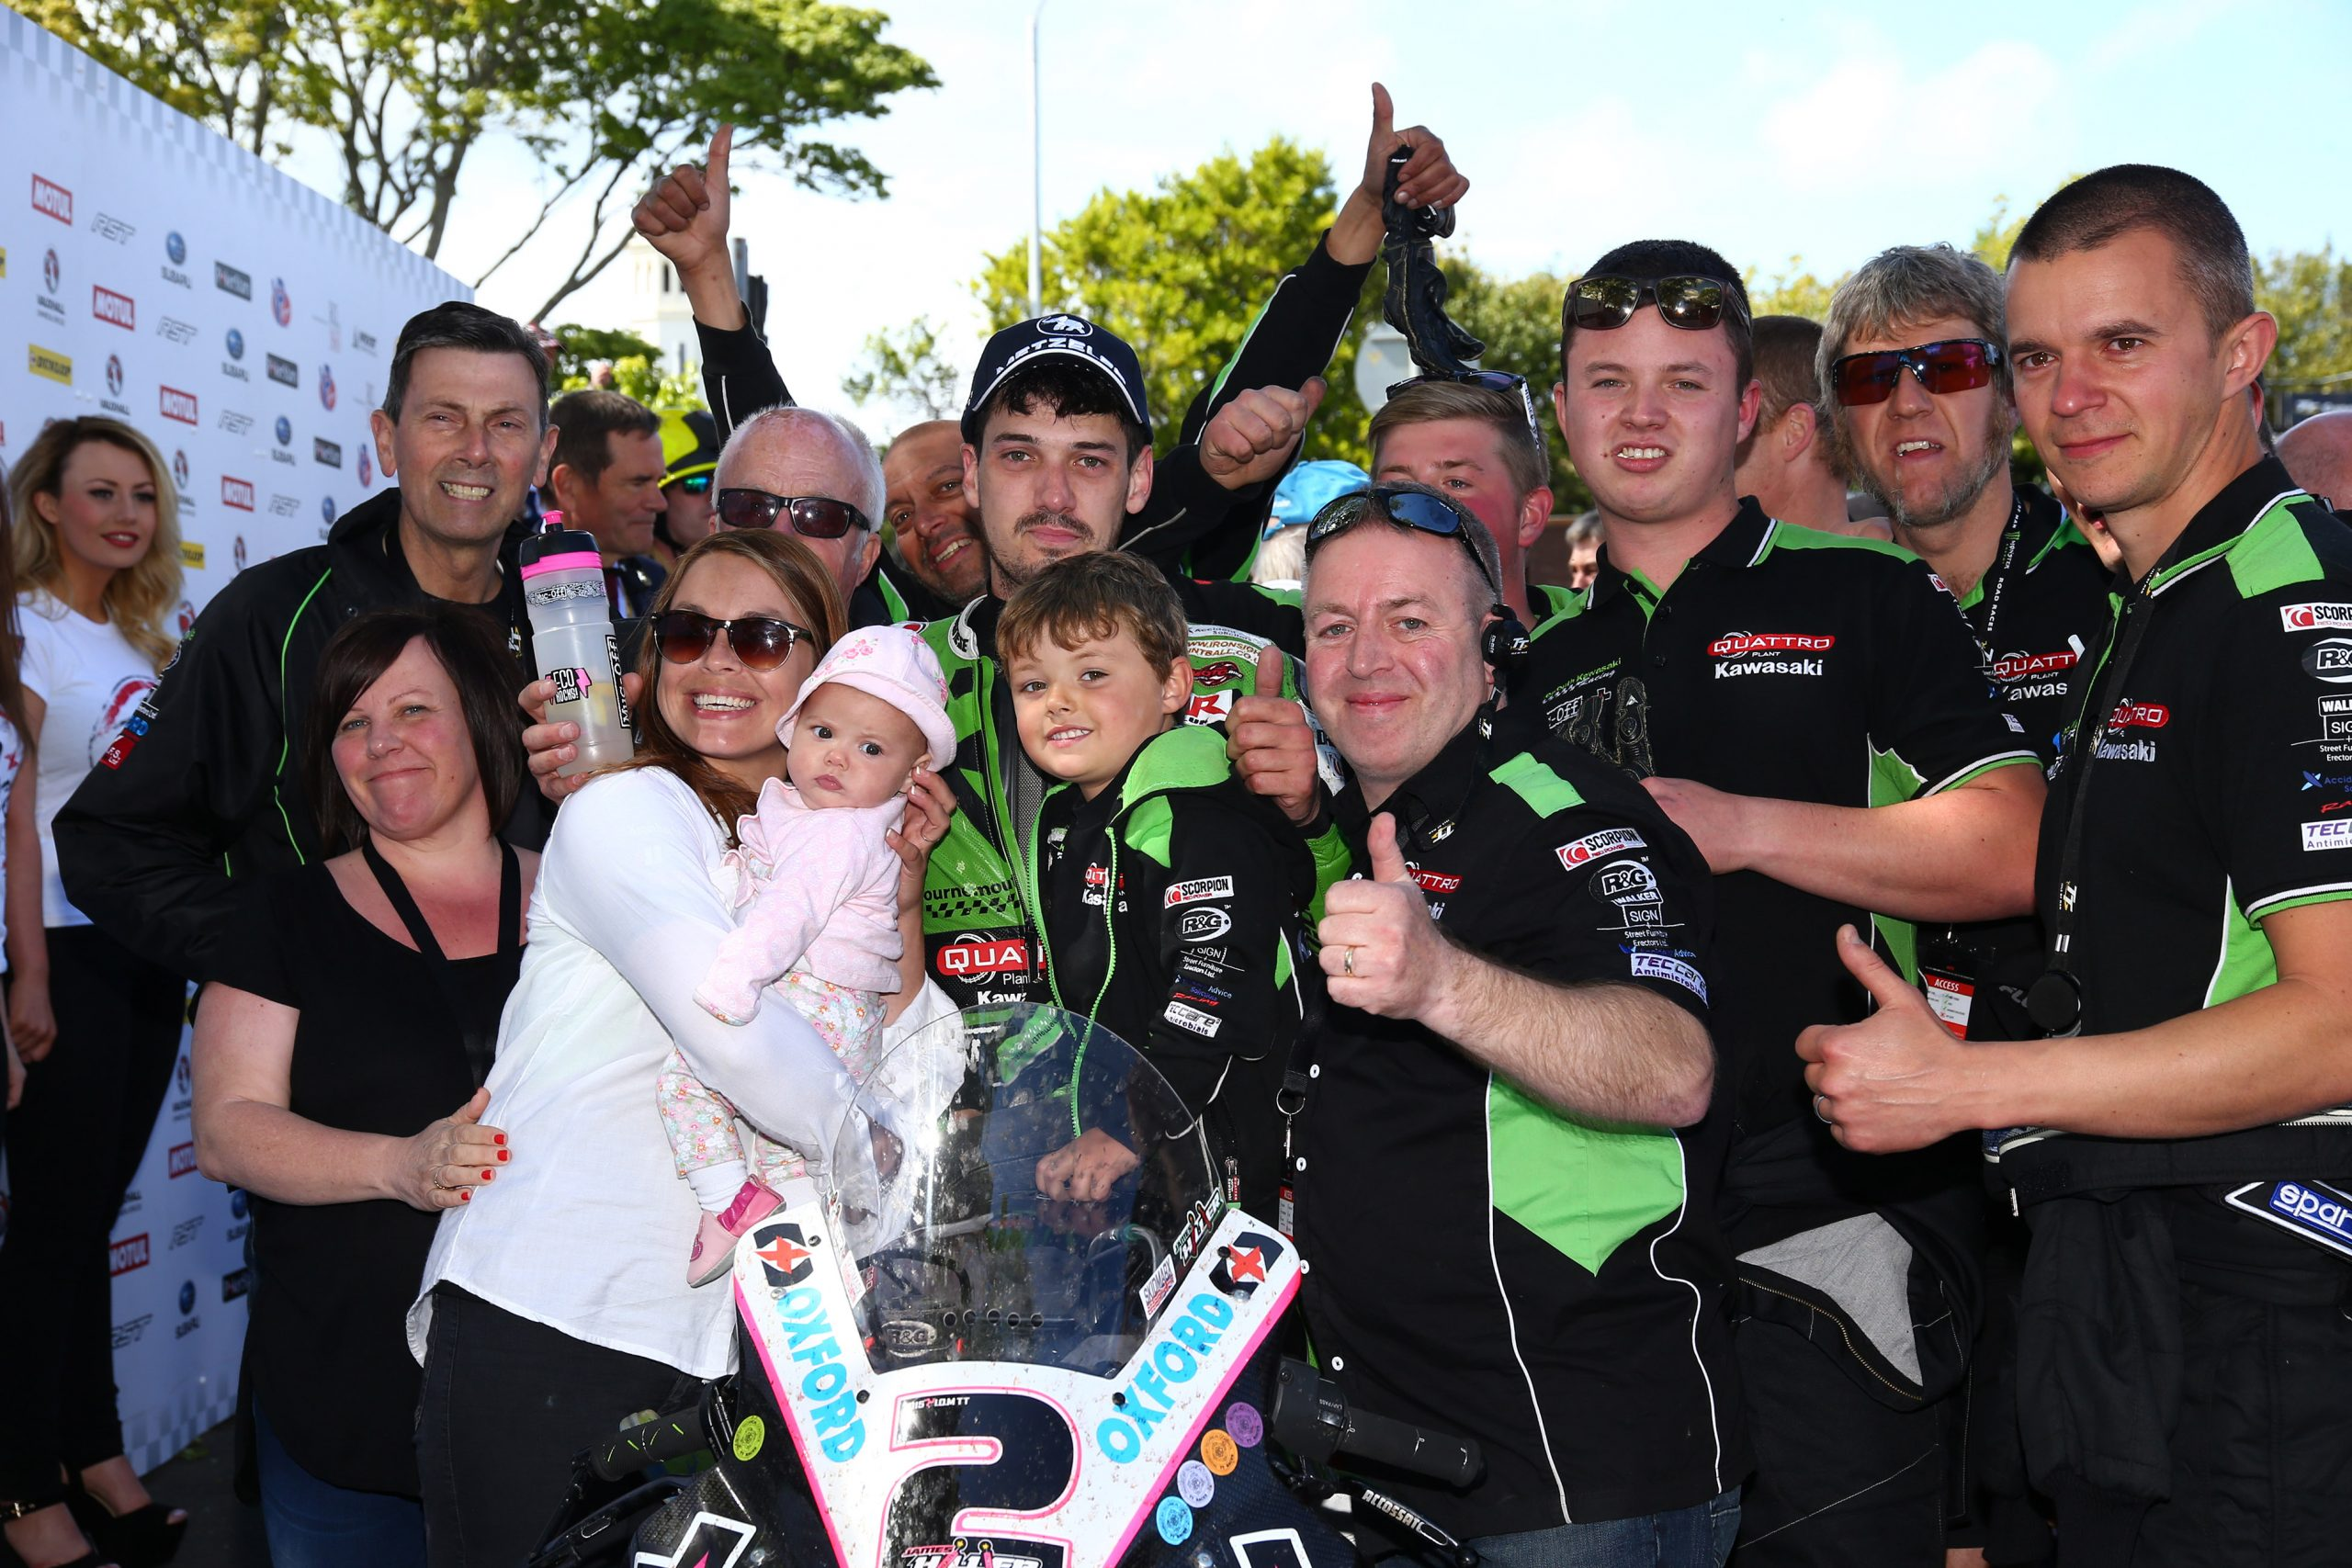 James Hillier and the team celebrating their Superbike podium at the 2015 TT